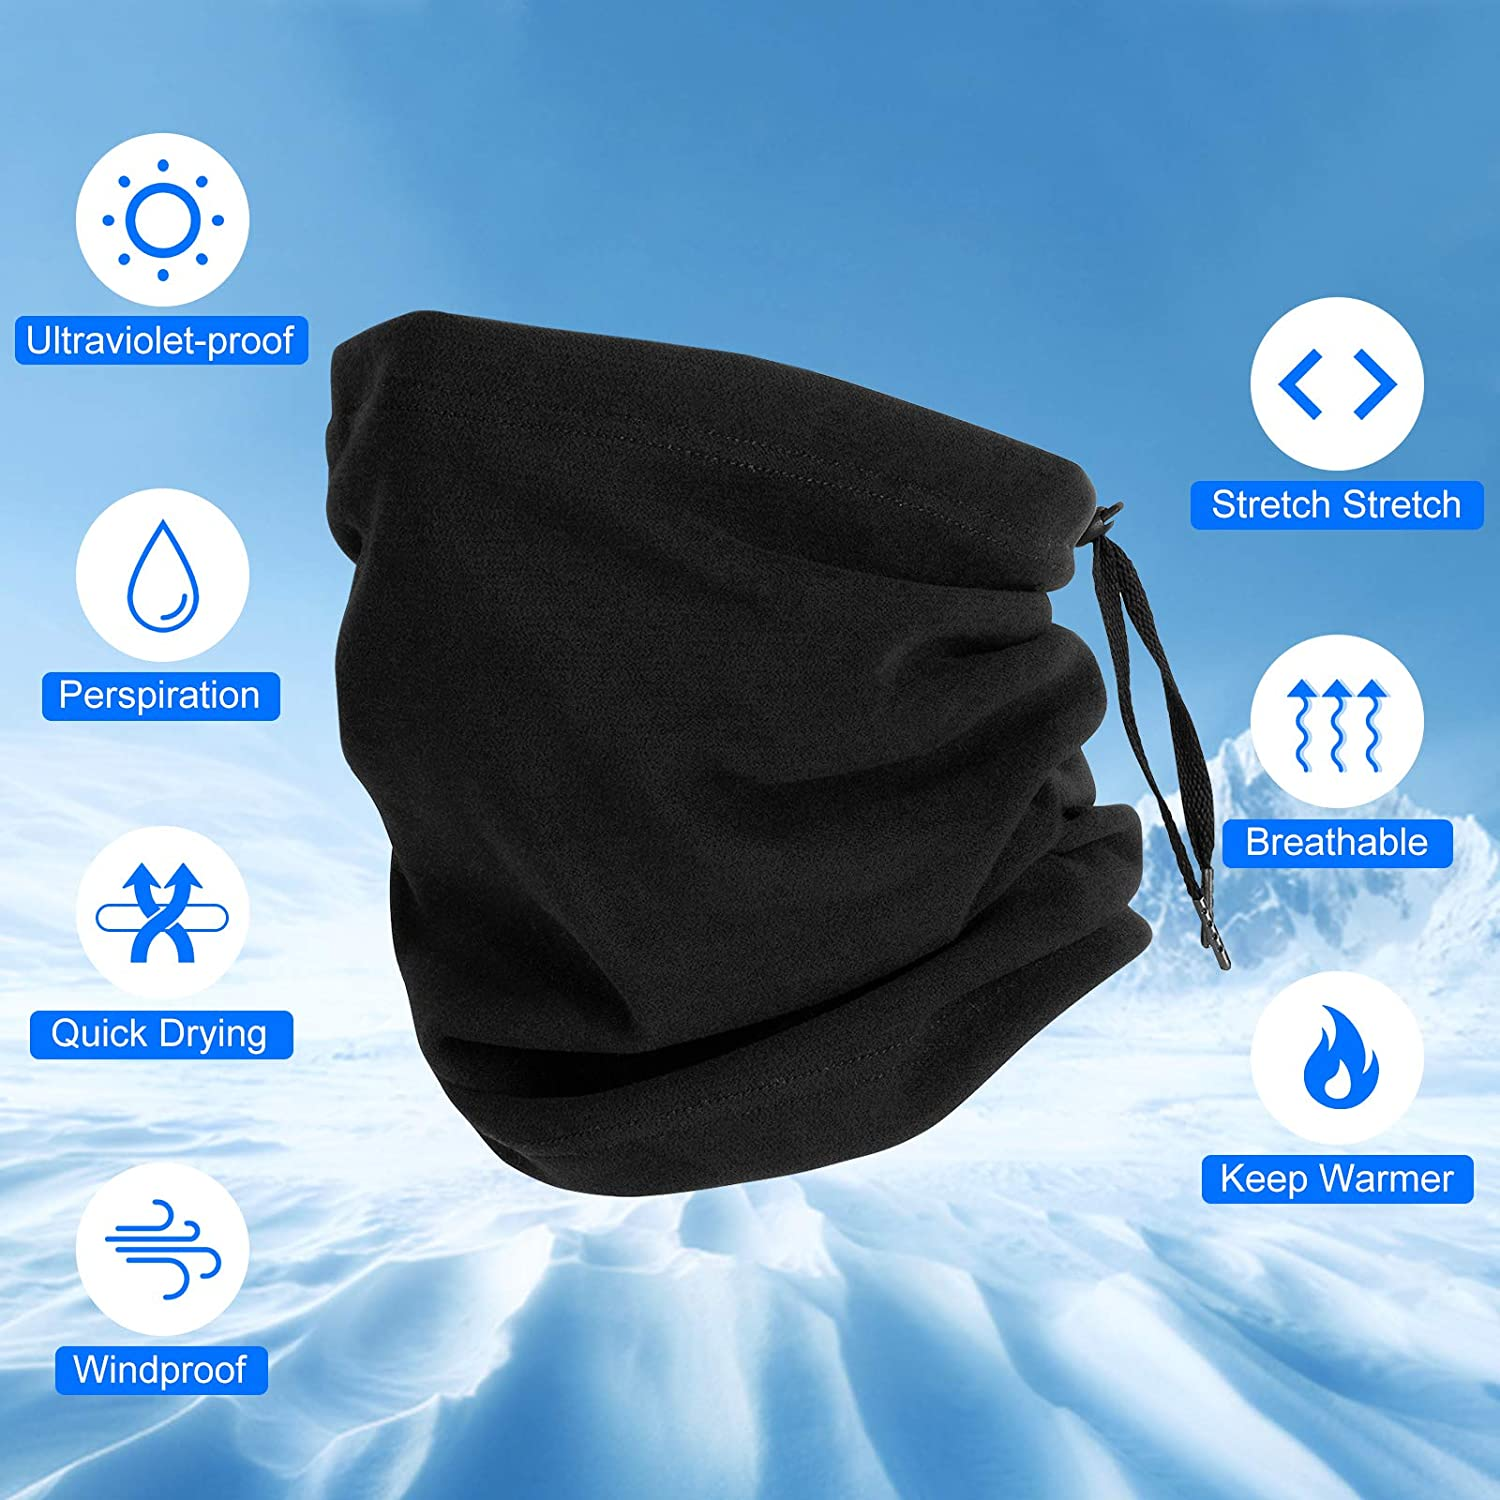 Washable Face Cover Scarf Headband Balaclava Headwear Lightweight Wind Dust Wind Protection for Men Women Breathable Winter Neck Gaiter Warmer with Drawstring onehous Bandana Face Mask Adjustable